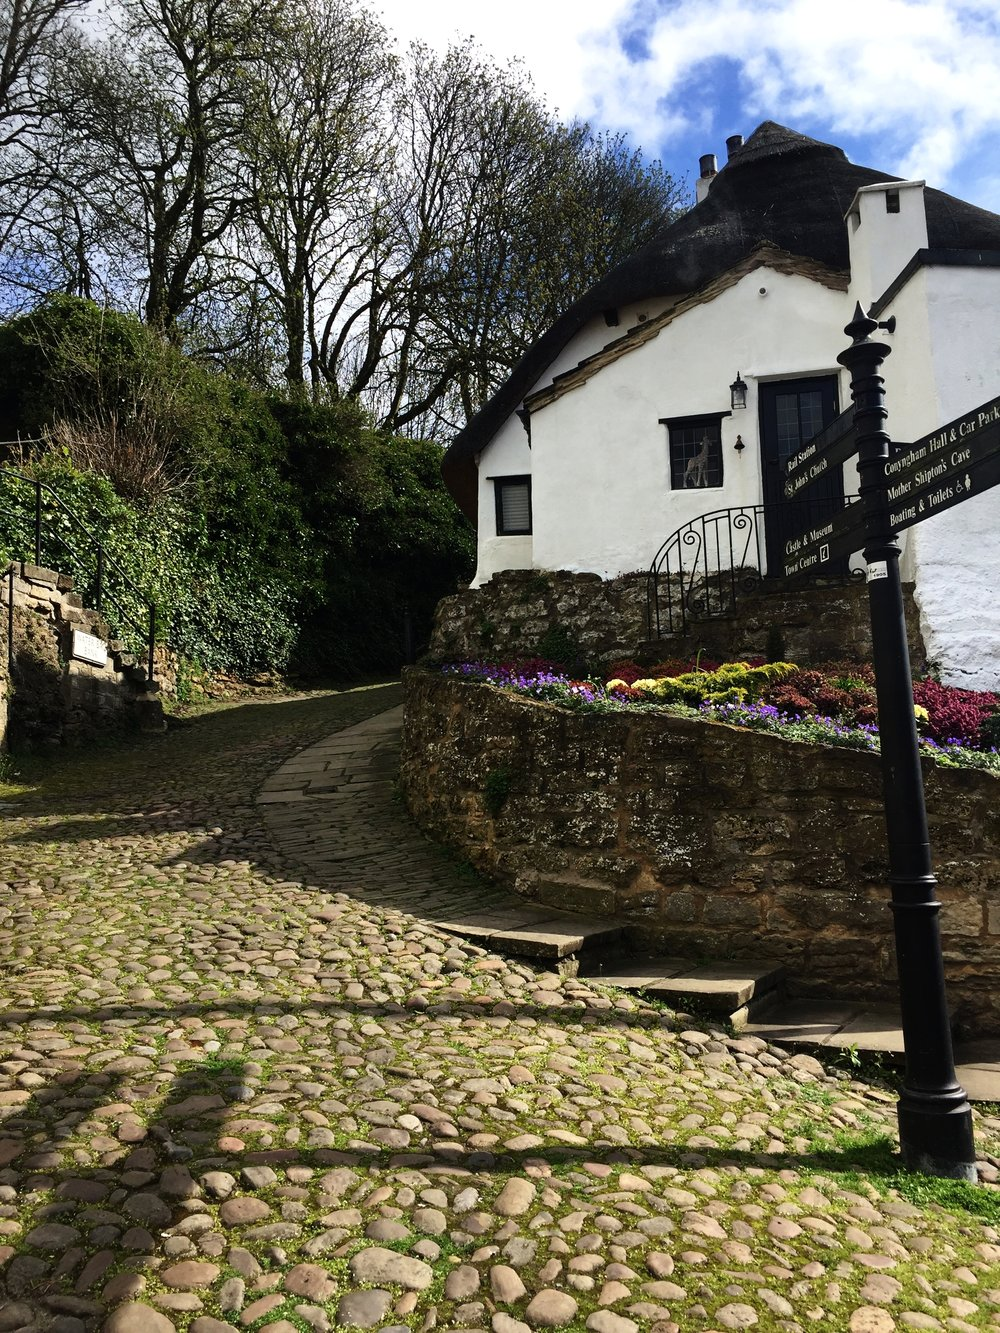 A Two Day Weekend In Yorkshire (Part 02): Knaresborough | Sea of Atlas